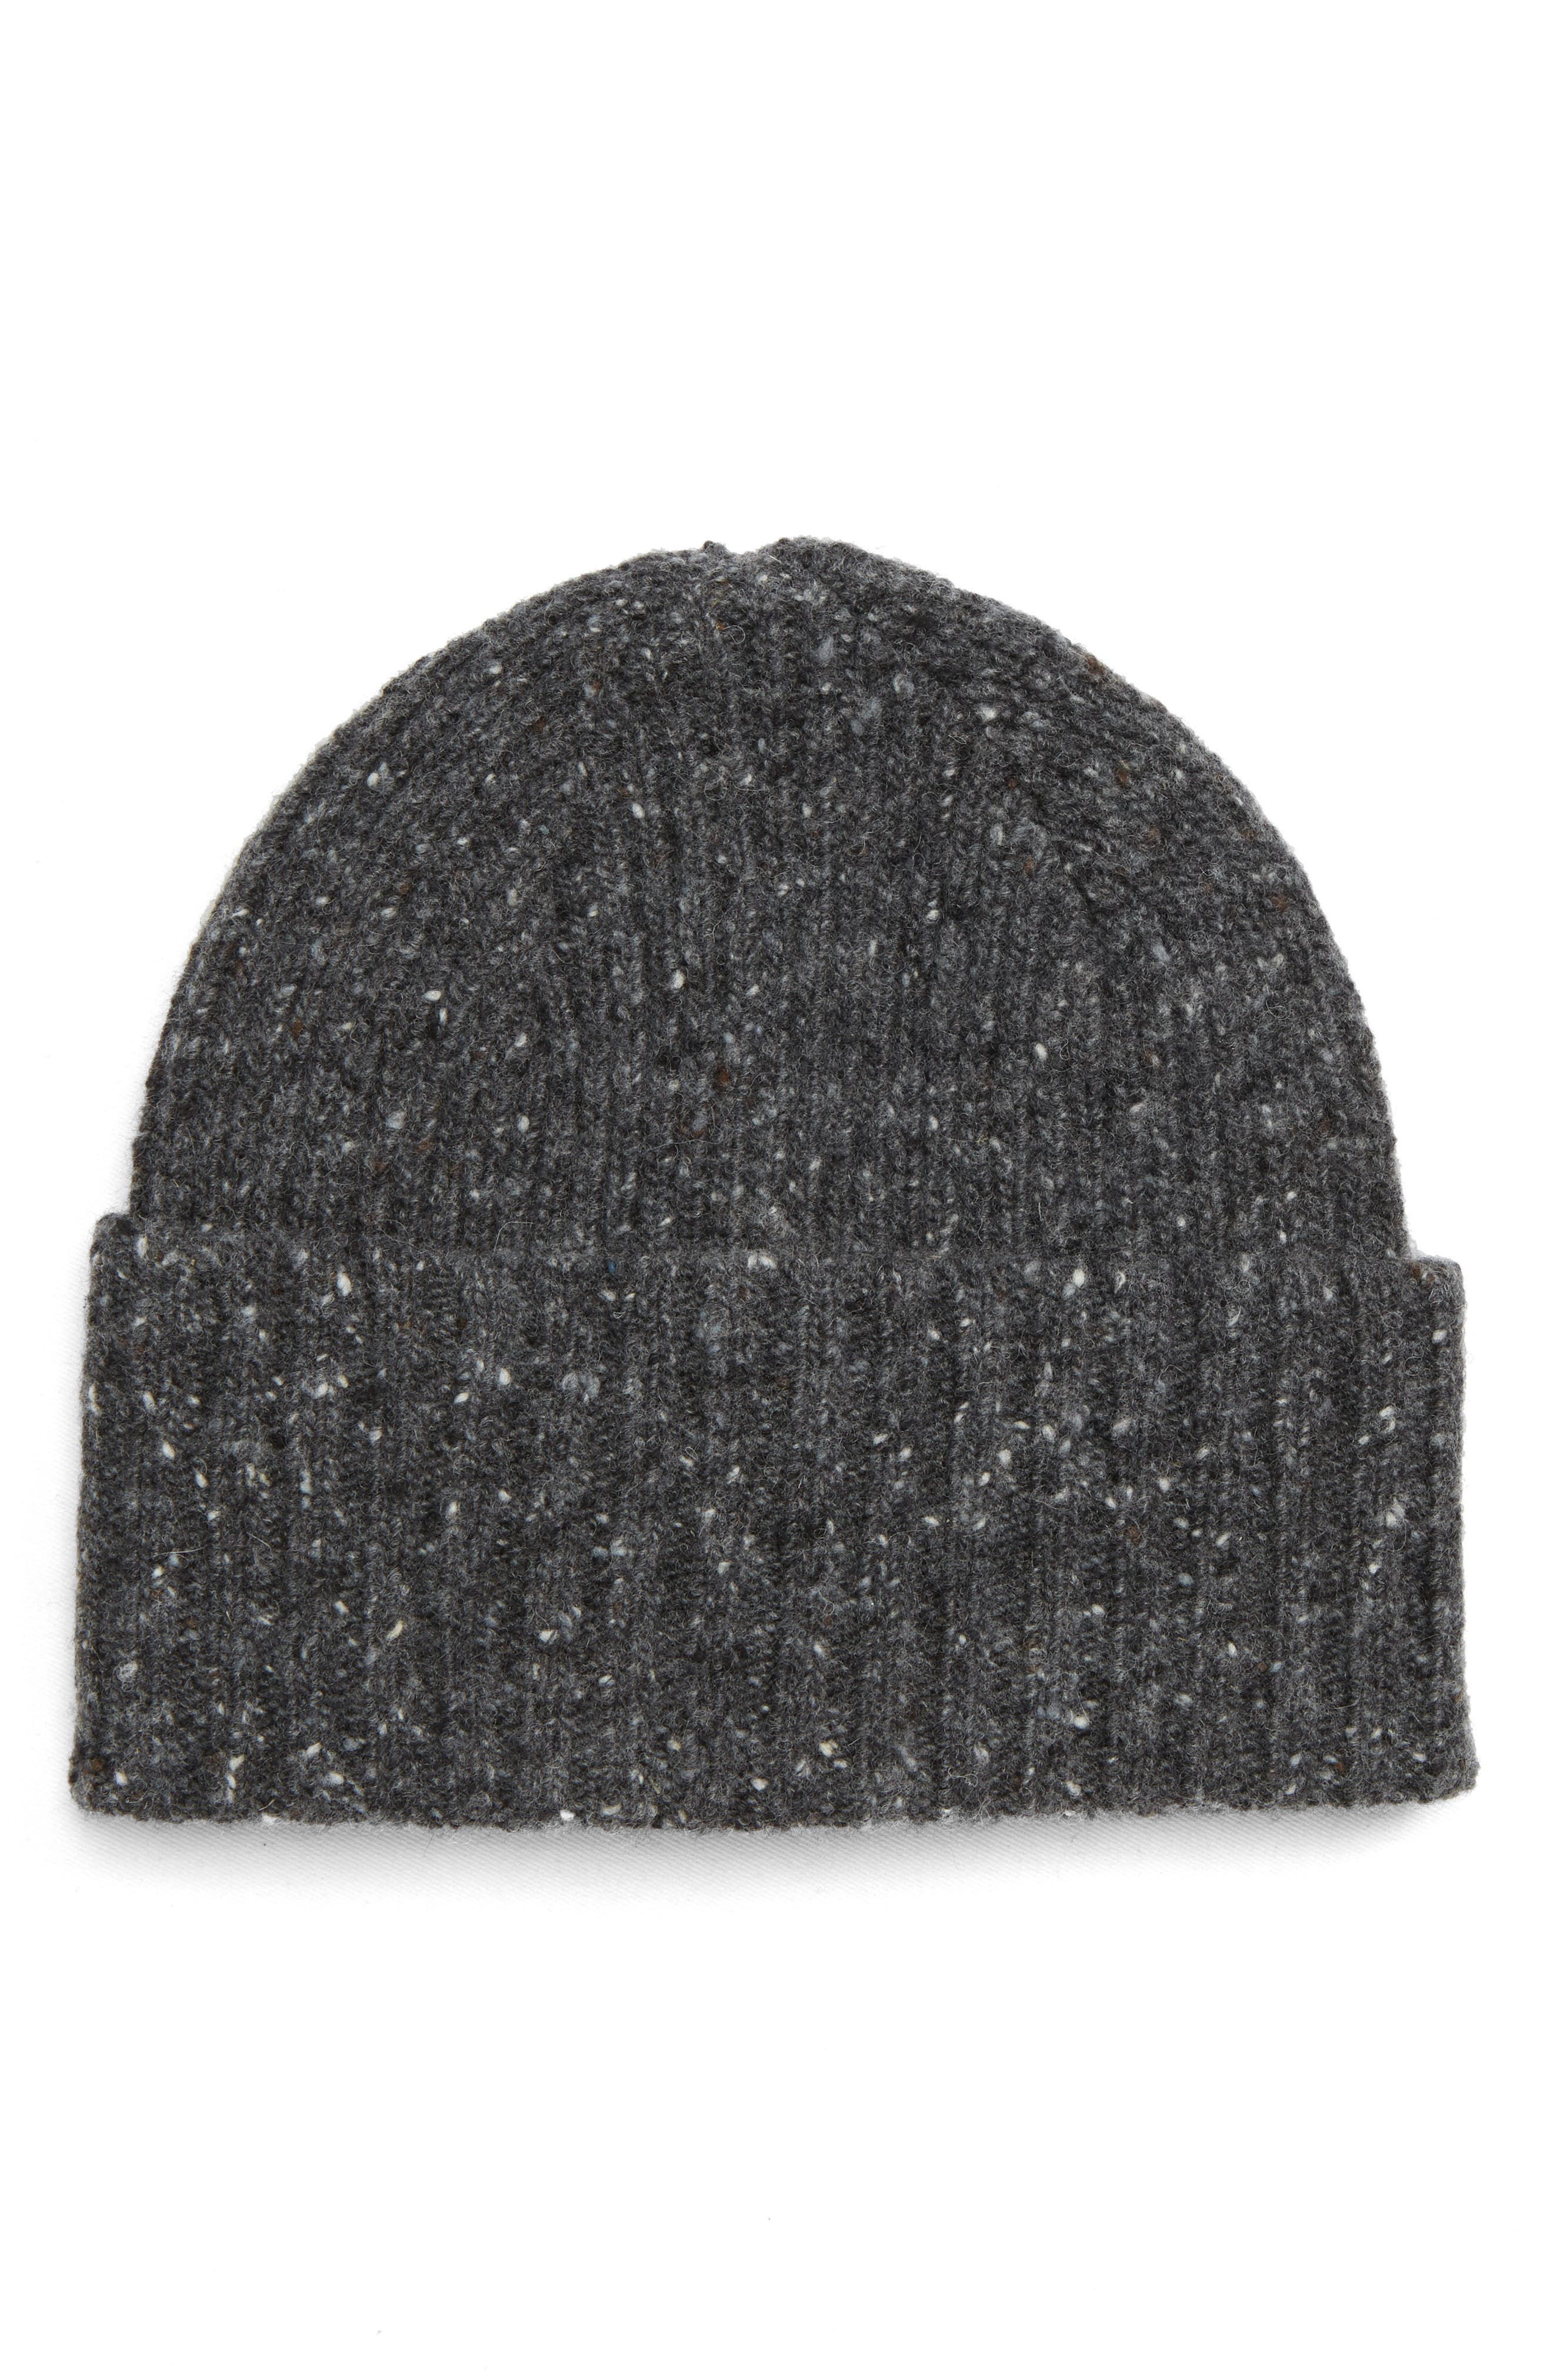 Drakes Donegal Wool Beanie,                         Main,                         color, GREY